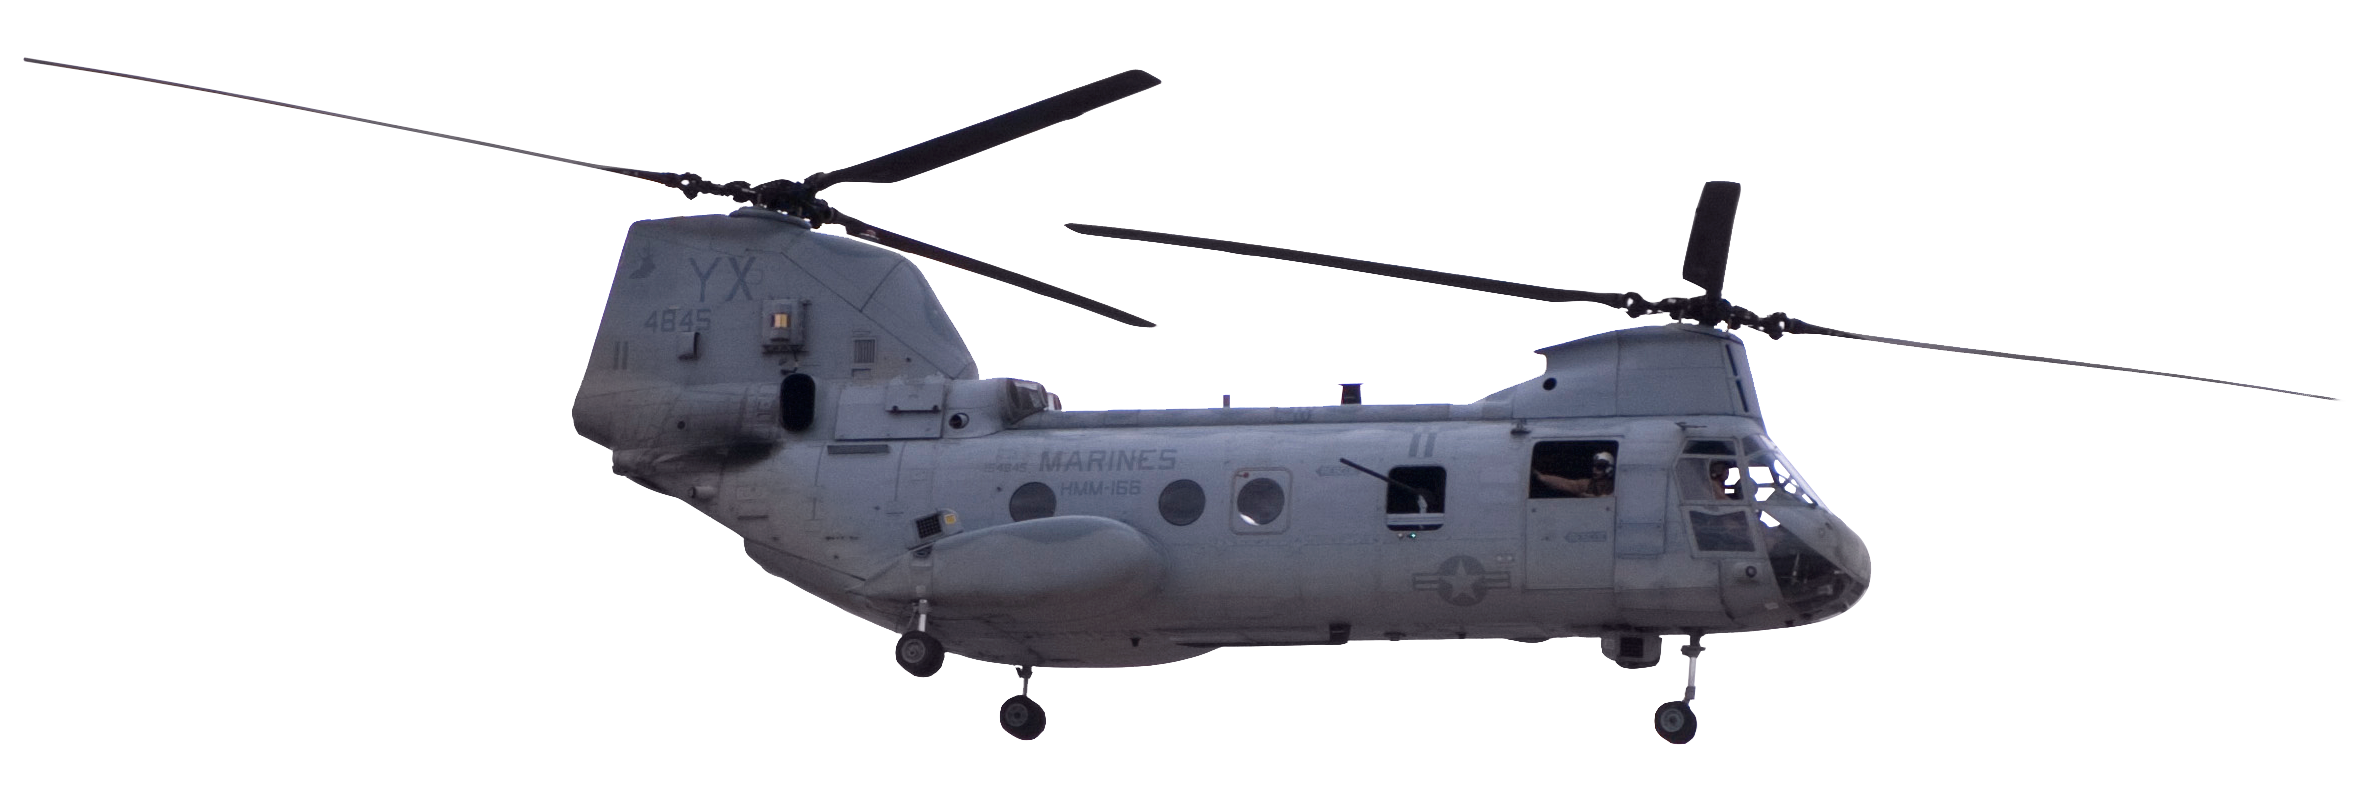 Helicopter Png image #40858